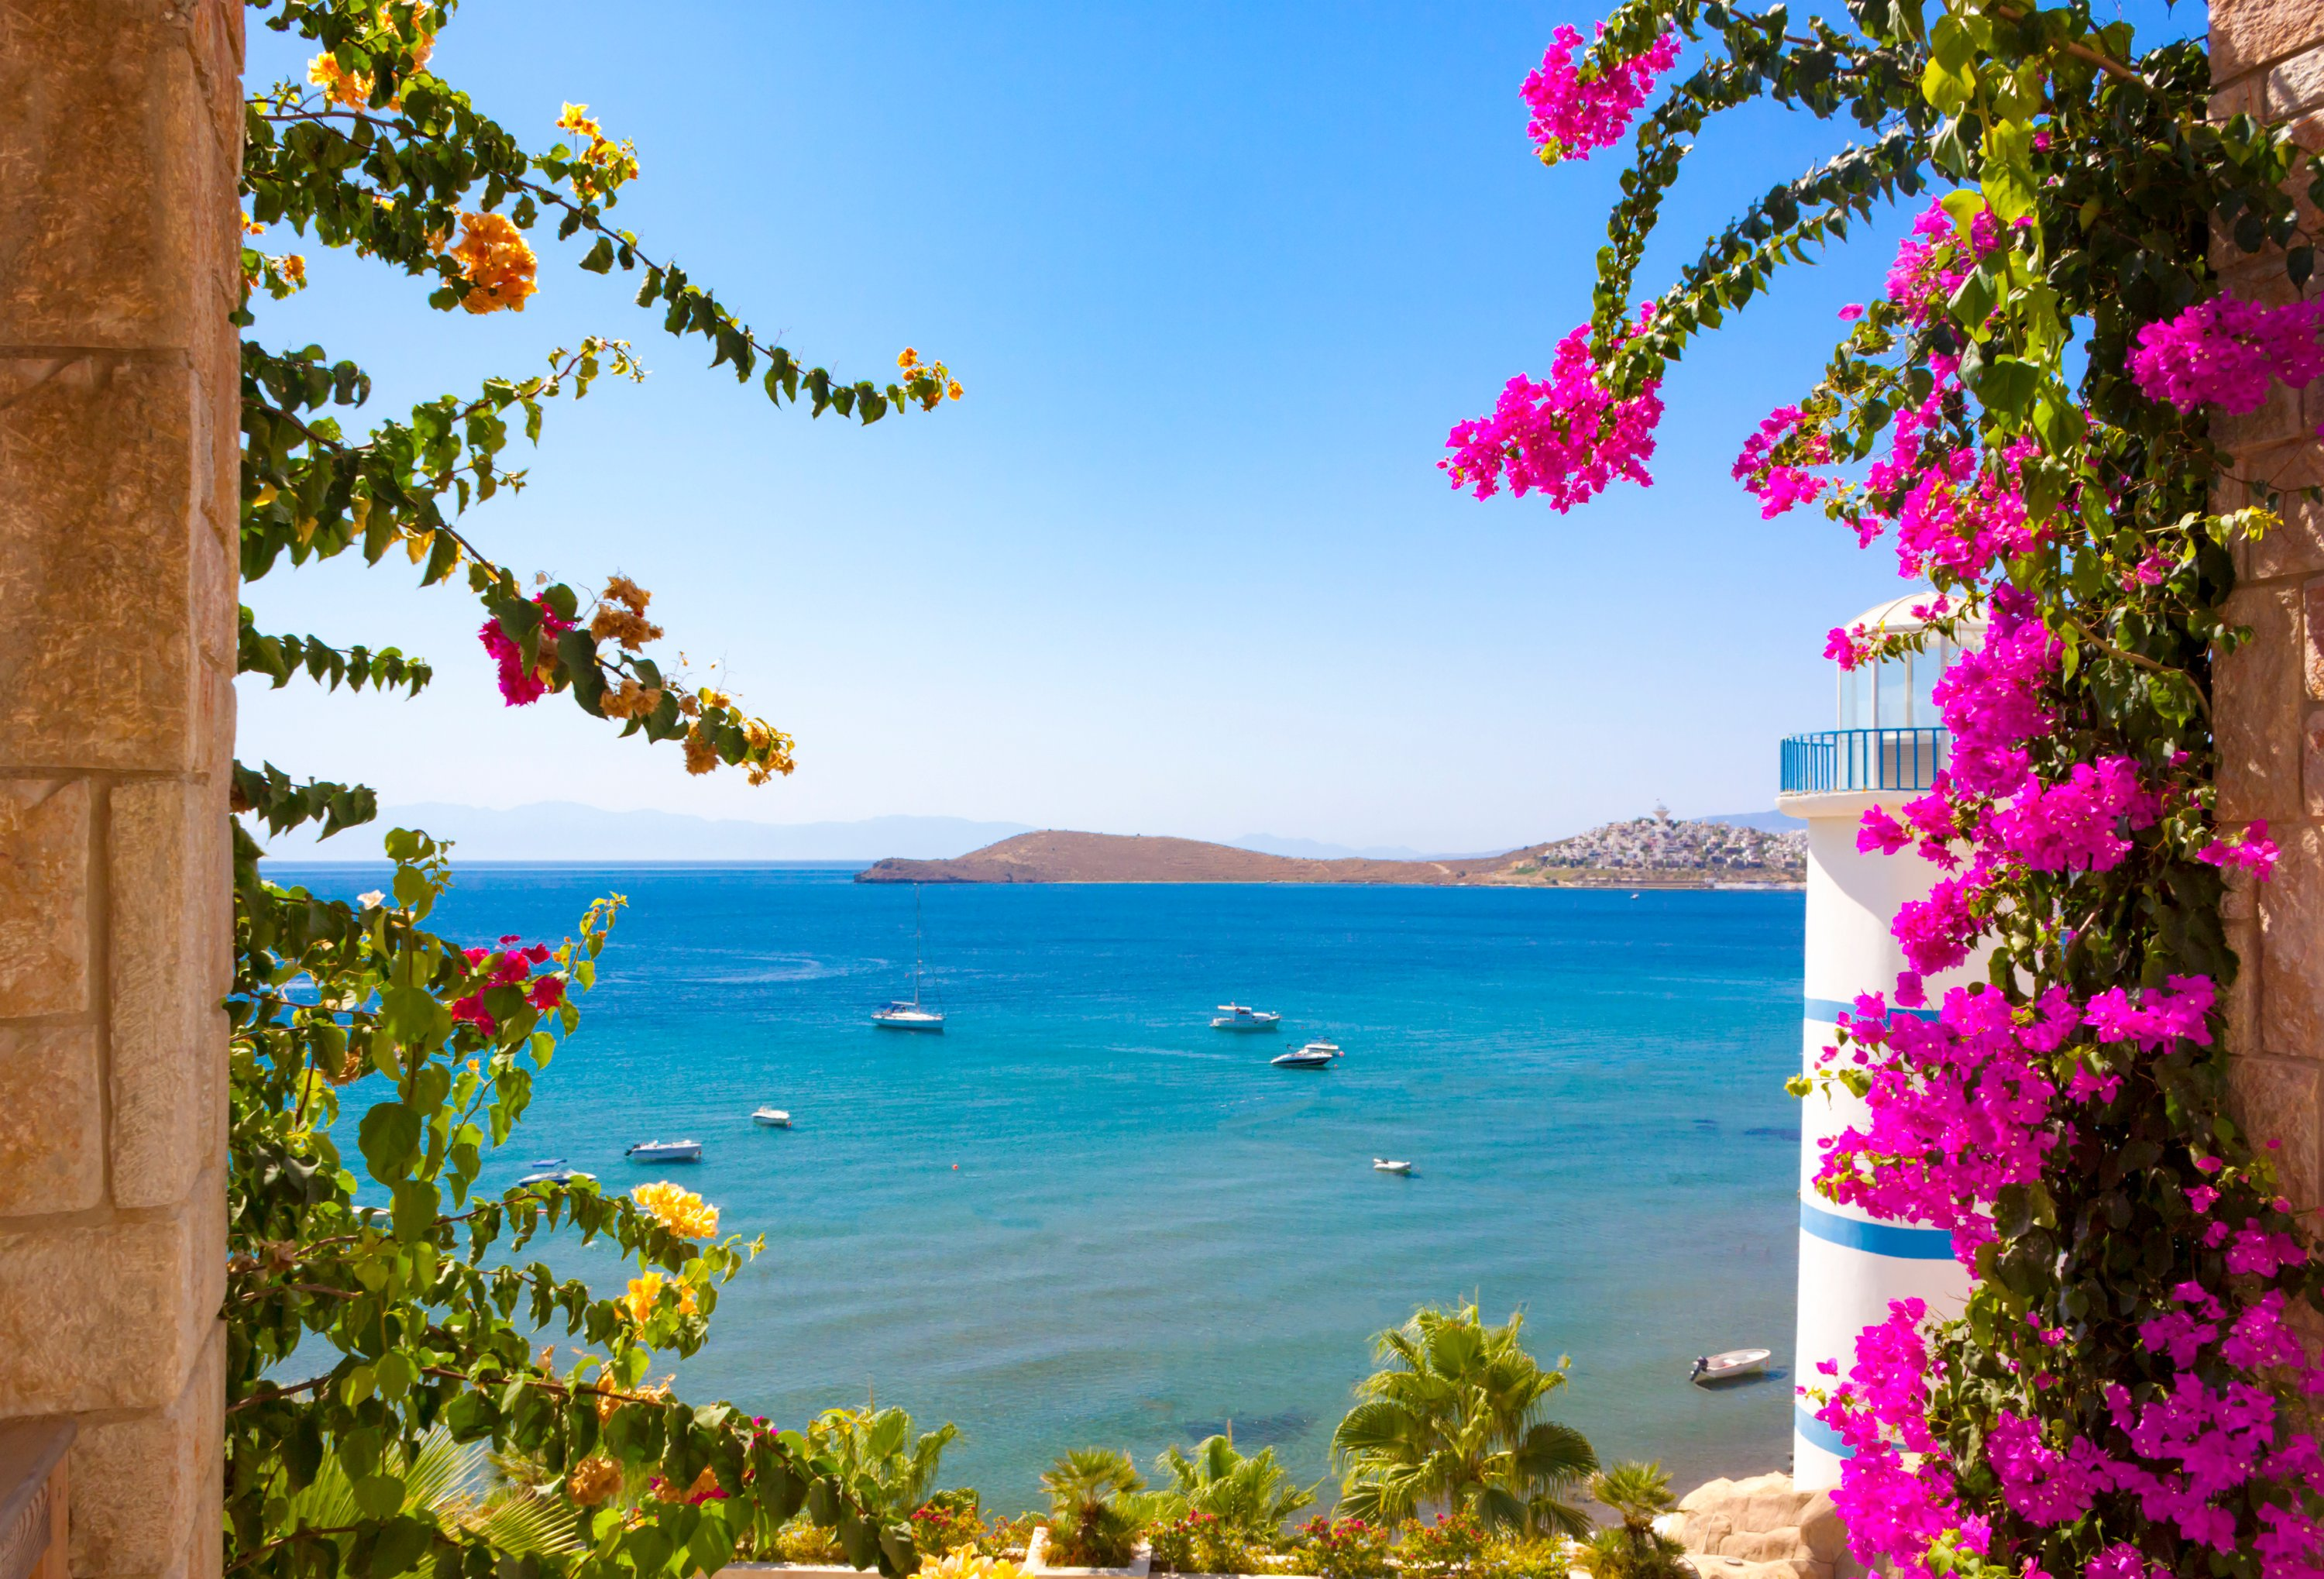 Turkey's southern and western coasts have been expats' favorite locations to settle in the country. (iStock Photo)